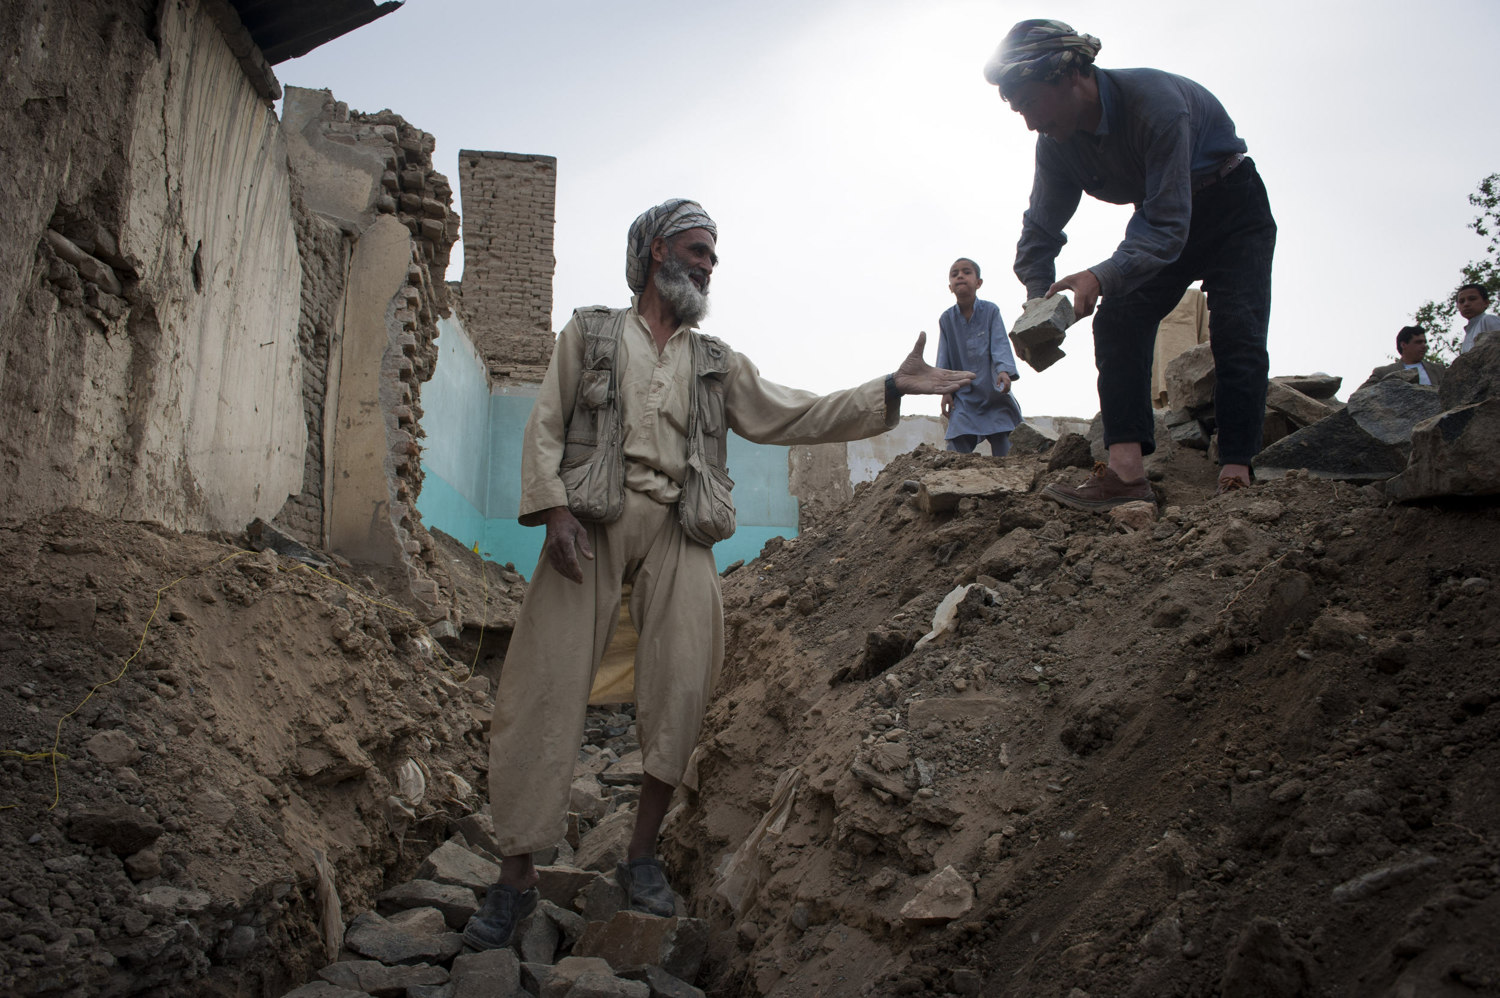 Sanangon, from Mazar Sharif lays rock in a trench that will be the foundation of the house in Kabul.The entire construction of the house will be done by unregulated labor.